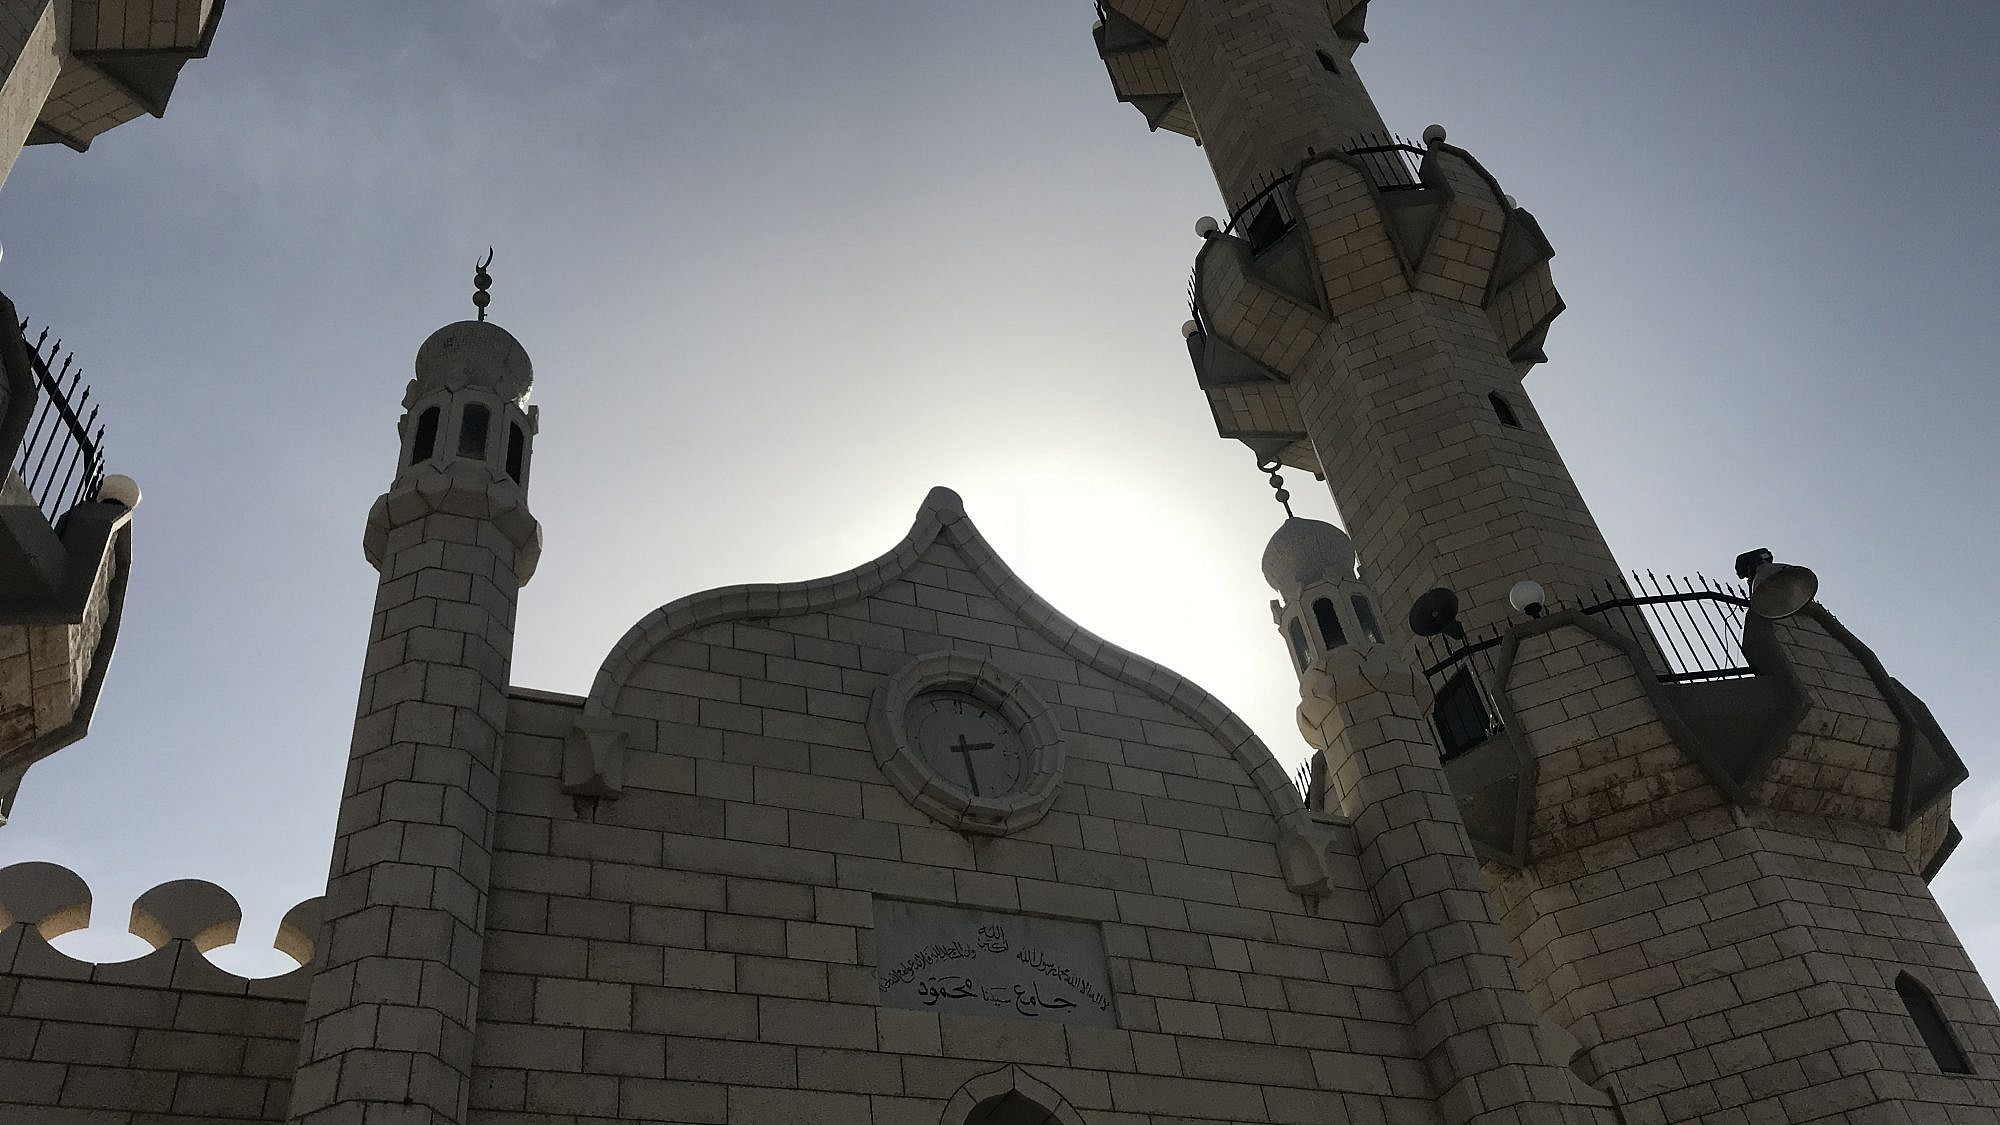 "The Mahmood Mosque near Haifa, Israel is the only Ahmadiyya mosque in the Middle East. Built in the late 1970s, it is named for the second khalifa of the Promised Messiah Bashiruddin Mahmood Ahmad, son of the founder of the Ahmadiyya Muslim Community, also known as the ""Promised Reformer."" Credit: Eliana Rudee."